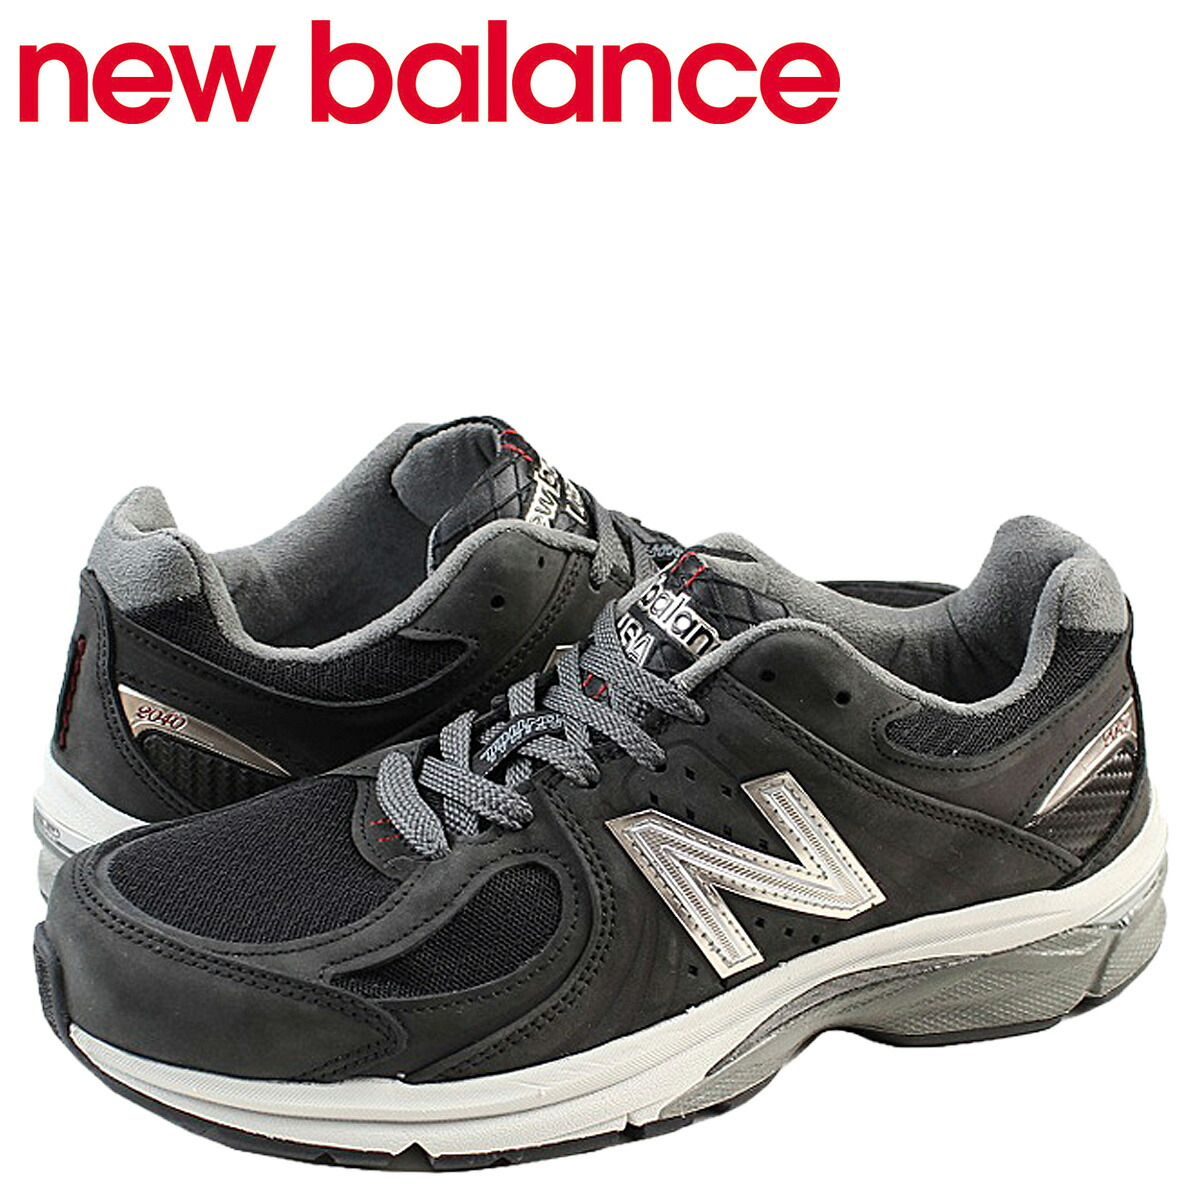 Discount New Balance Shoes For December